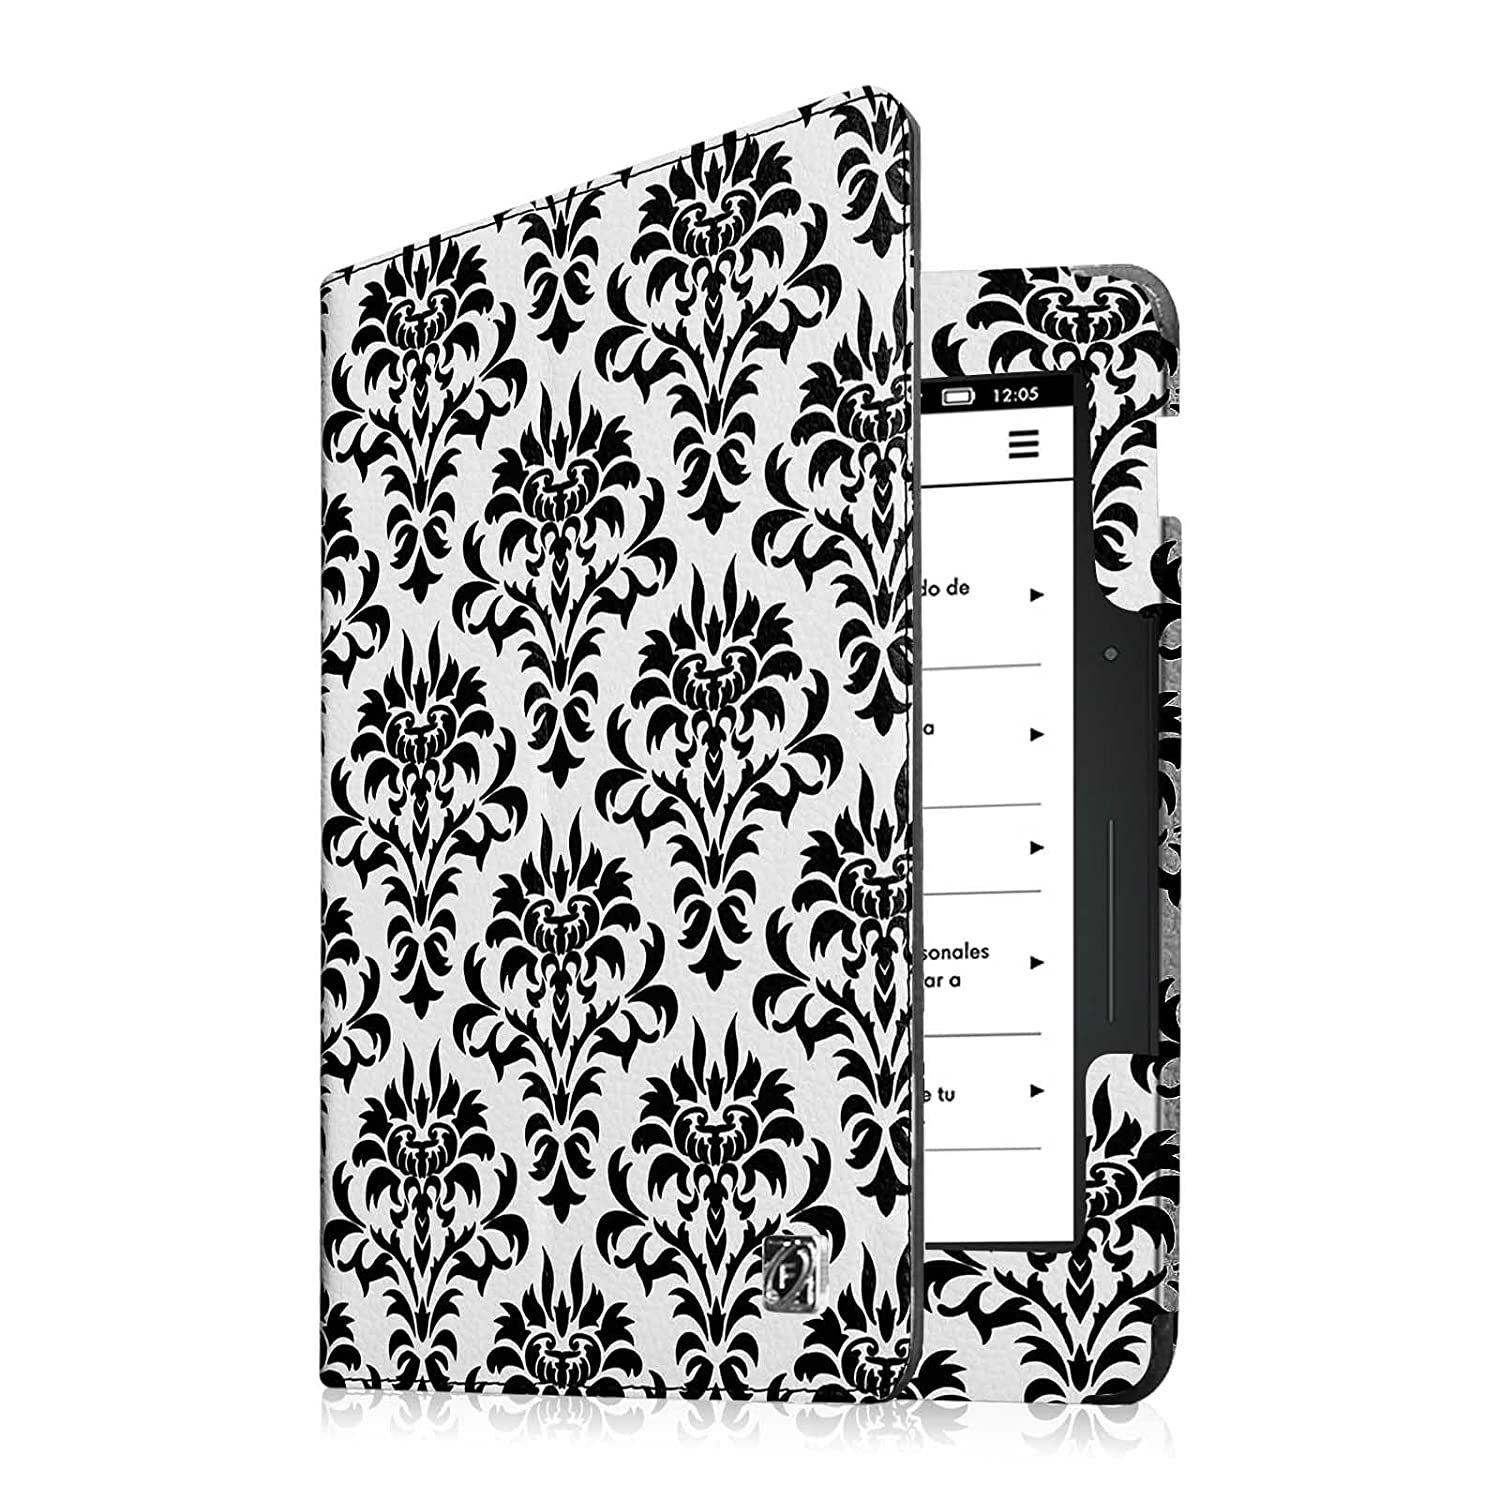 Amazon.com: Fintie Folio Case for Kindle Voyage - Premium PU Leather Book Style Case Cover with Auto Sleep/Wake (will only fit Amazon Kindle Voyage 2014), ...